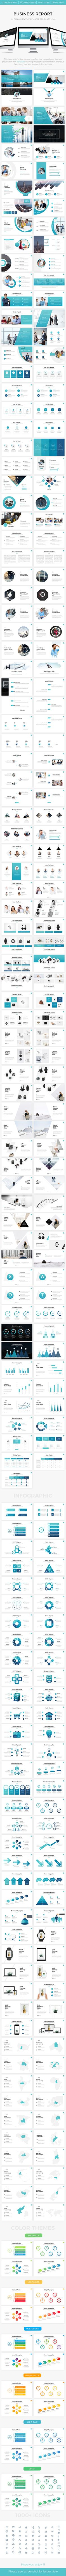 Business Anual Report Keynote Template